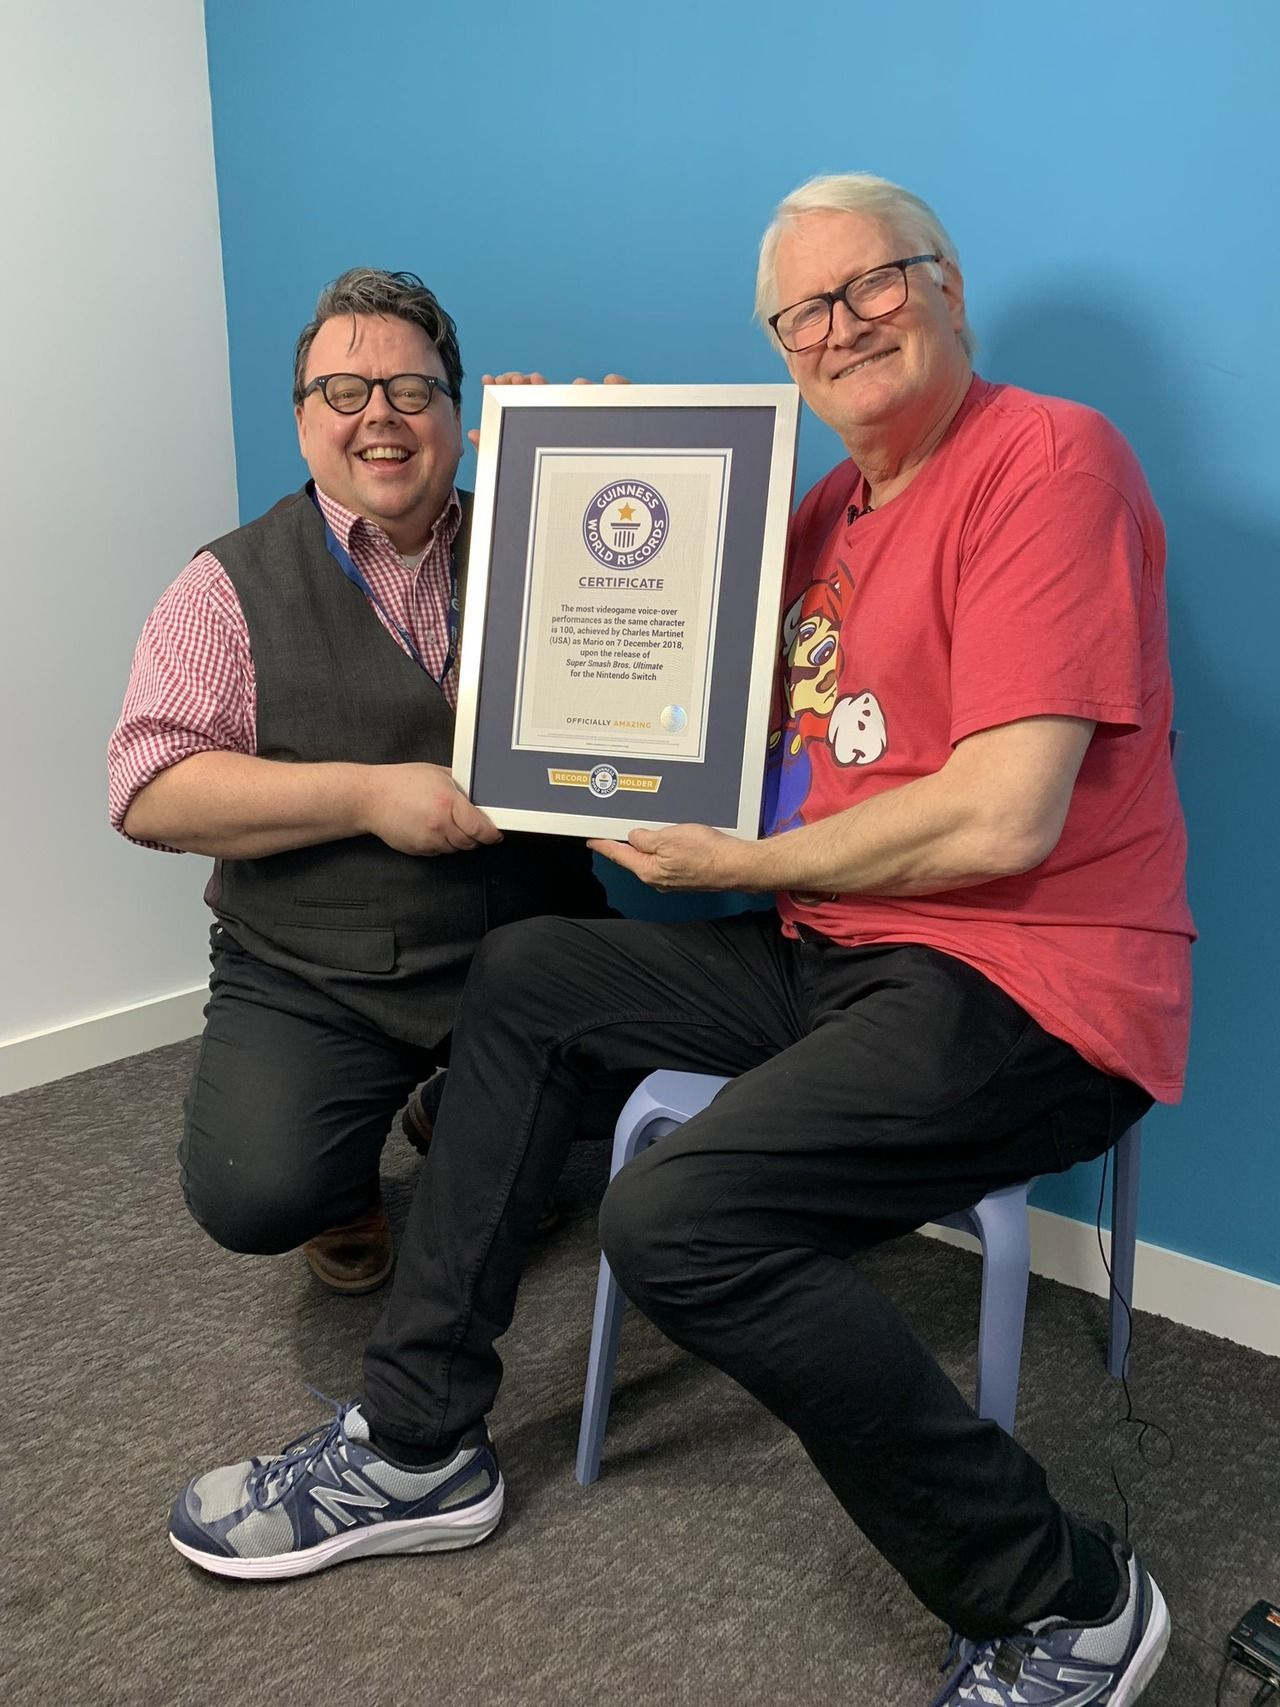 Charles Martinet, the voice of Mario, has received the Guinness World Record for most video game voi... - #'64 #acting #bros #games #gaming #mario #n64 #nintendo #retro #smash #ssb #ssbu #Super: #switch #Ultimate #video #voice